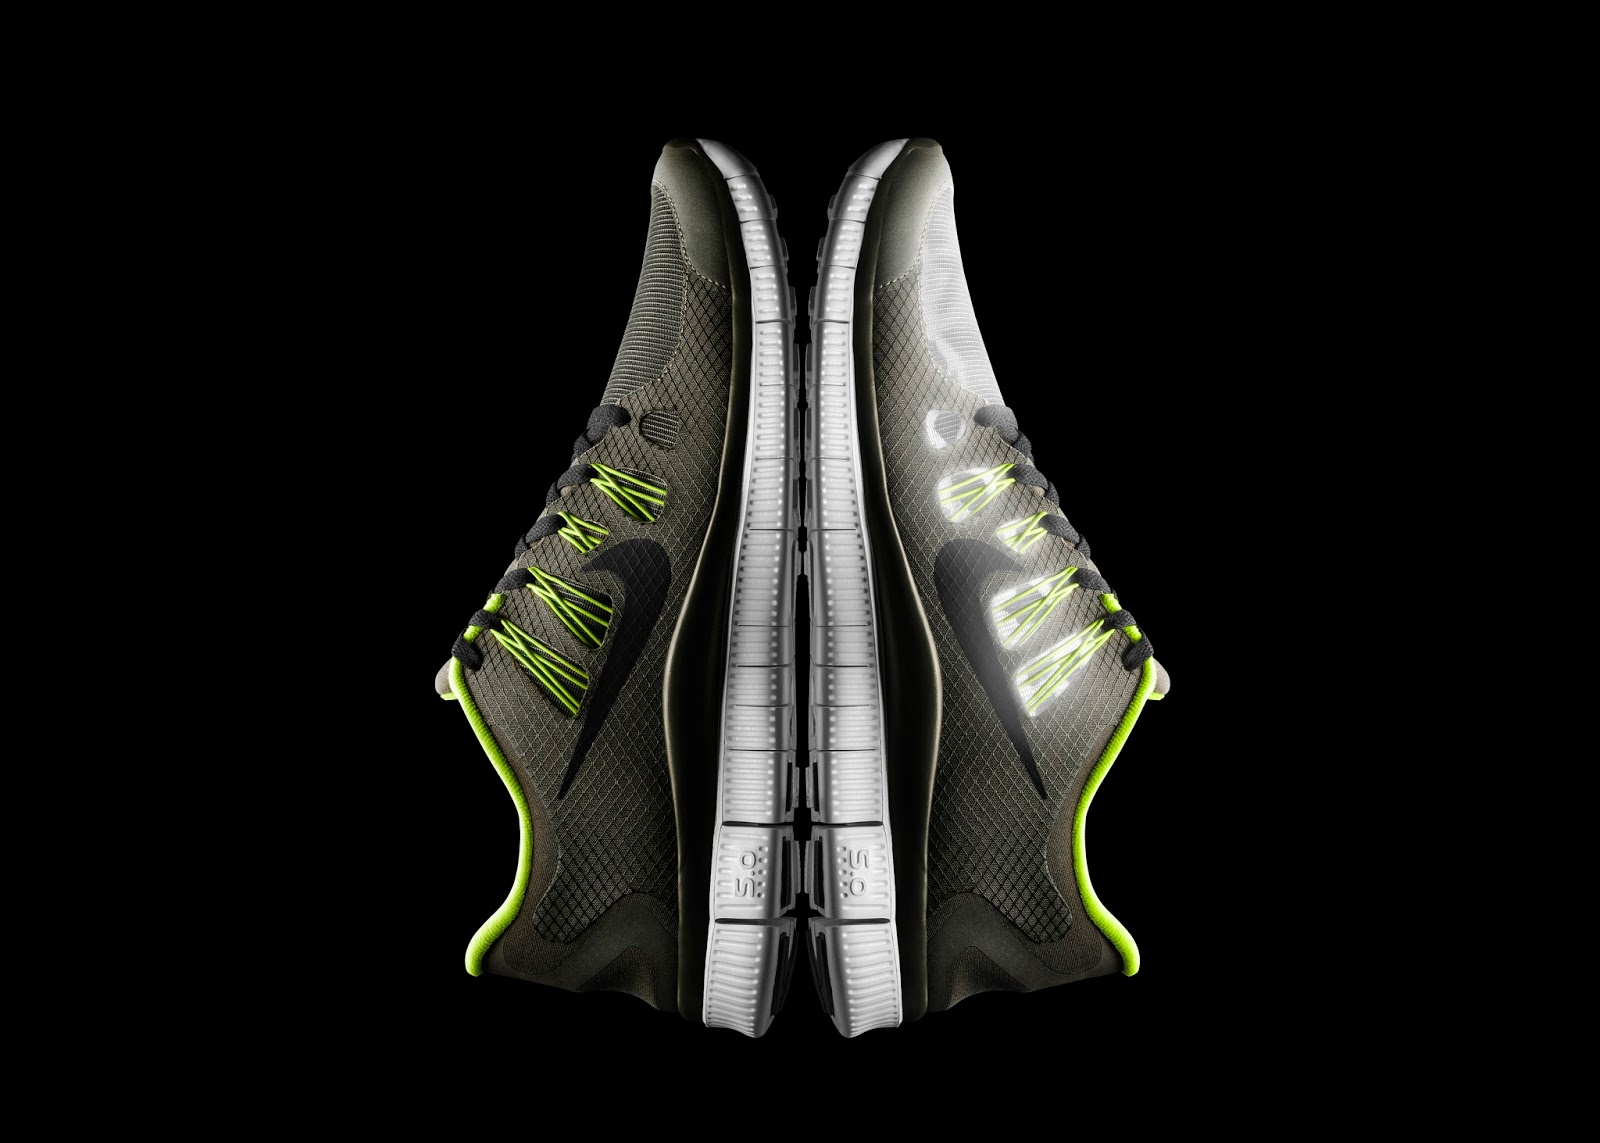 Nike Flywire Technology Shoes Nike Flywire Technology